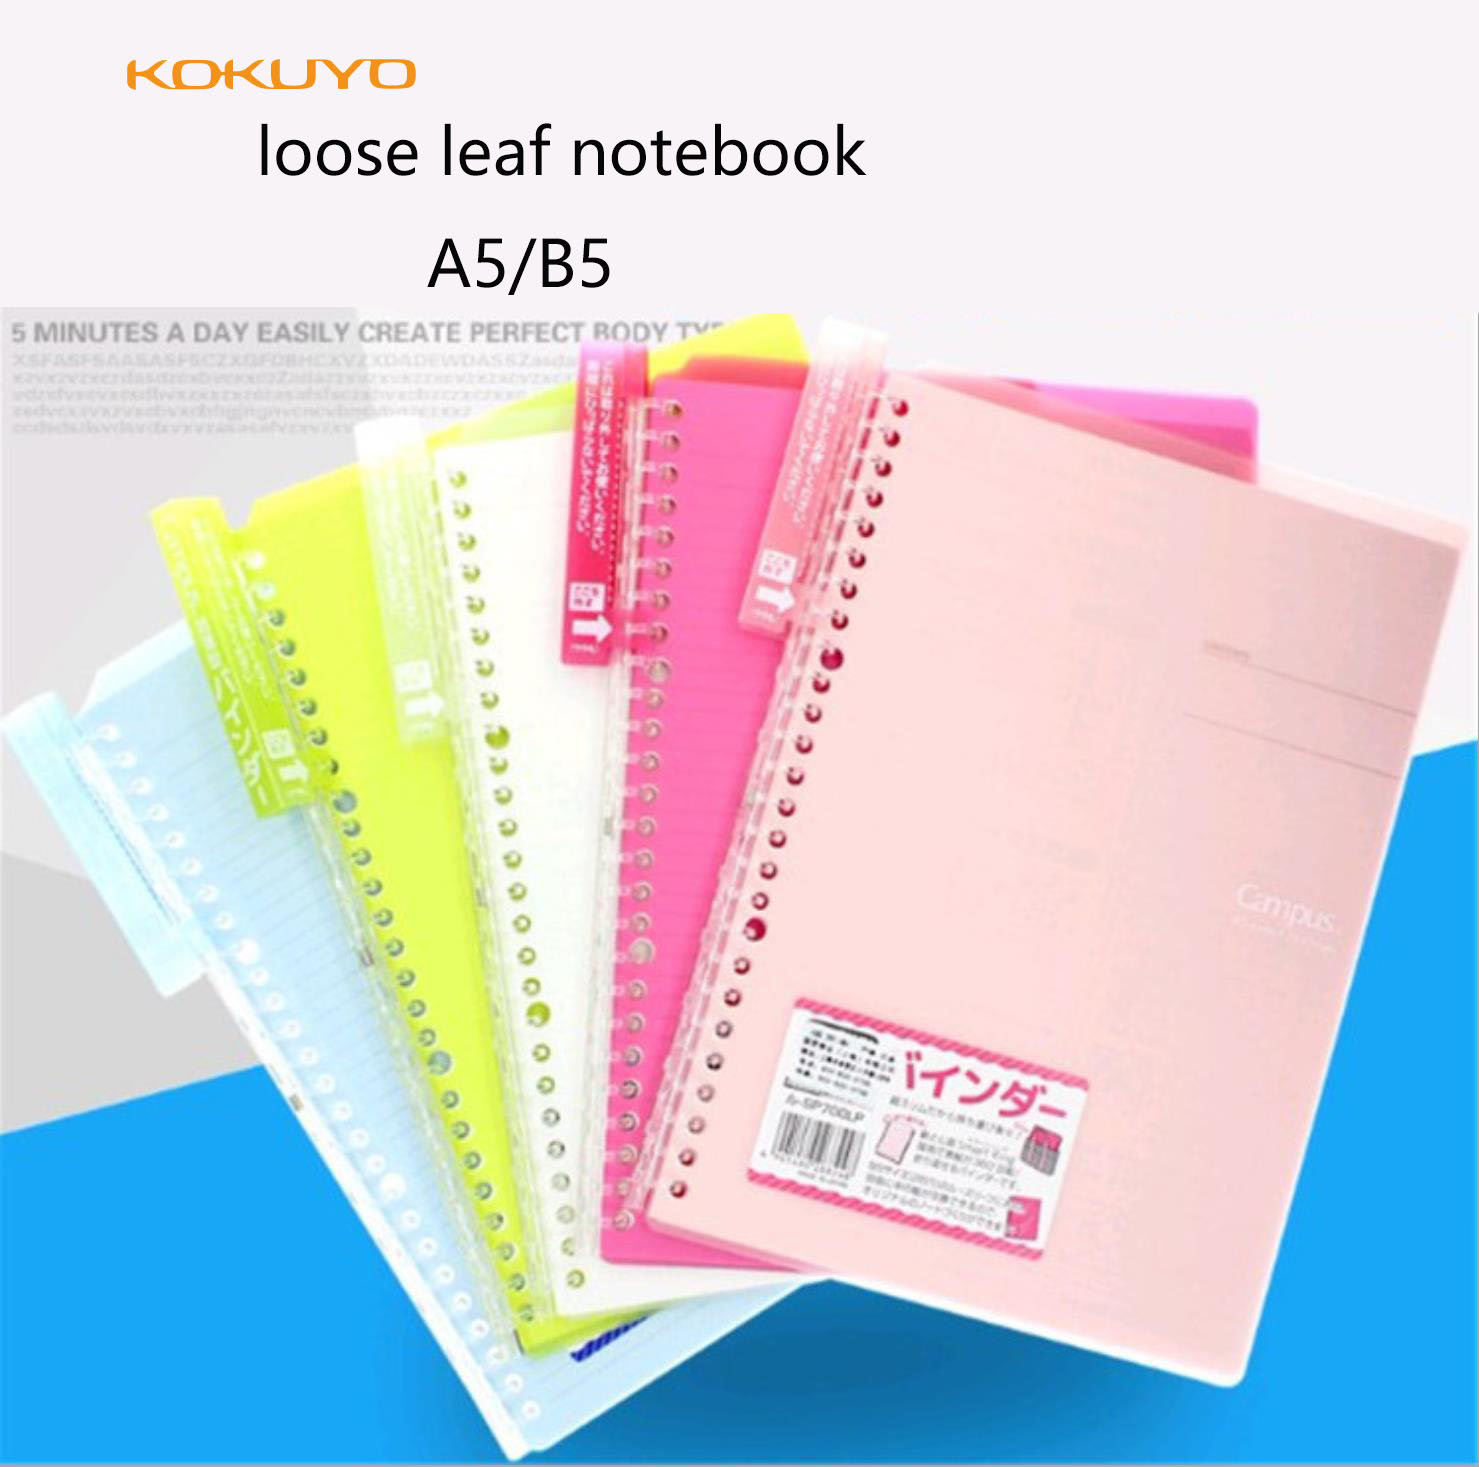 TUNACOCO A5/B5 JAPAN KOKUYO 10sheet PVC Book Cover Daily Planner Schedule Loose Leaf Inner Notebook For Bullet Journal Bz1710112